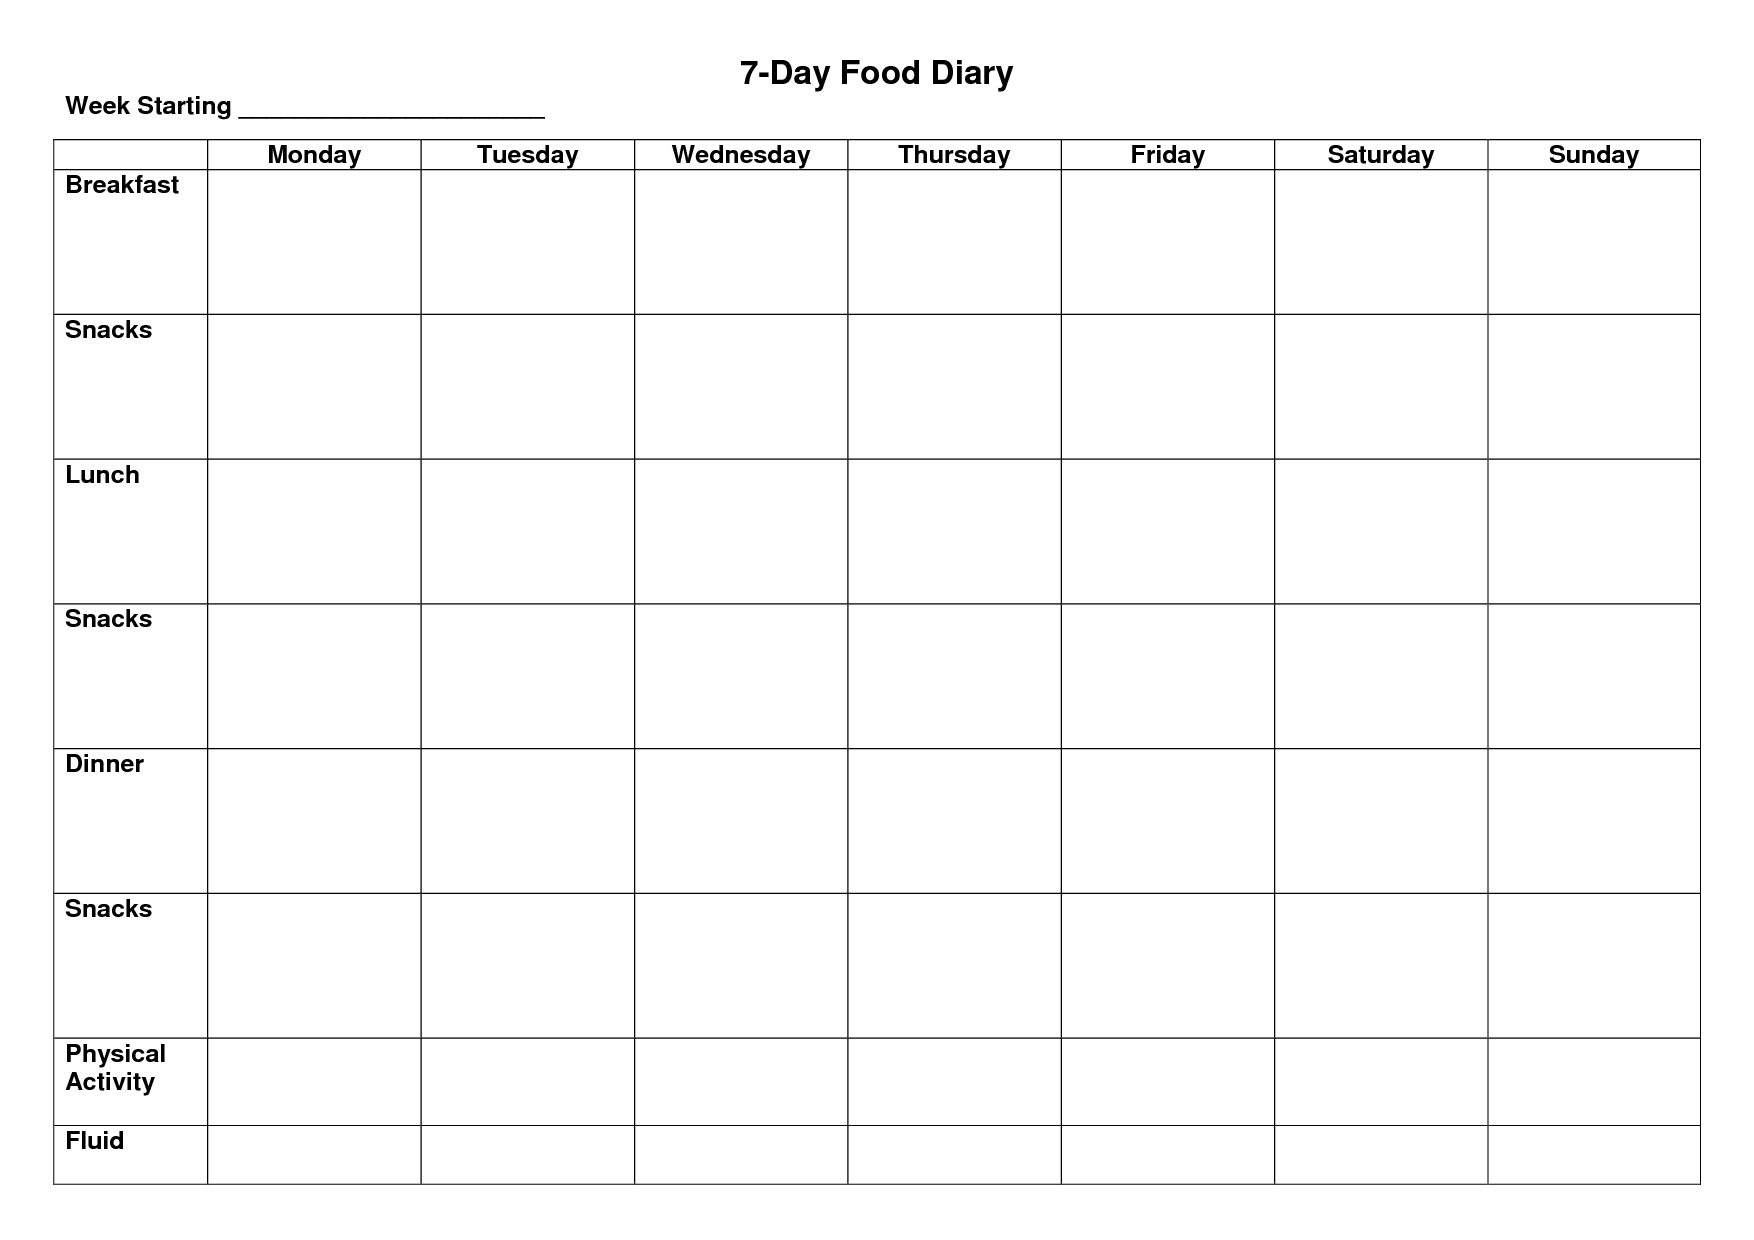 7-Day Food Diary Template | Diet Plans In 2019 | Food Diary, Diary inside 7 Day Meal Planner Template